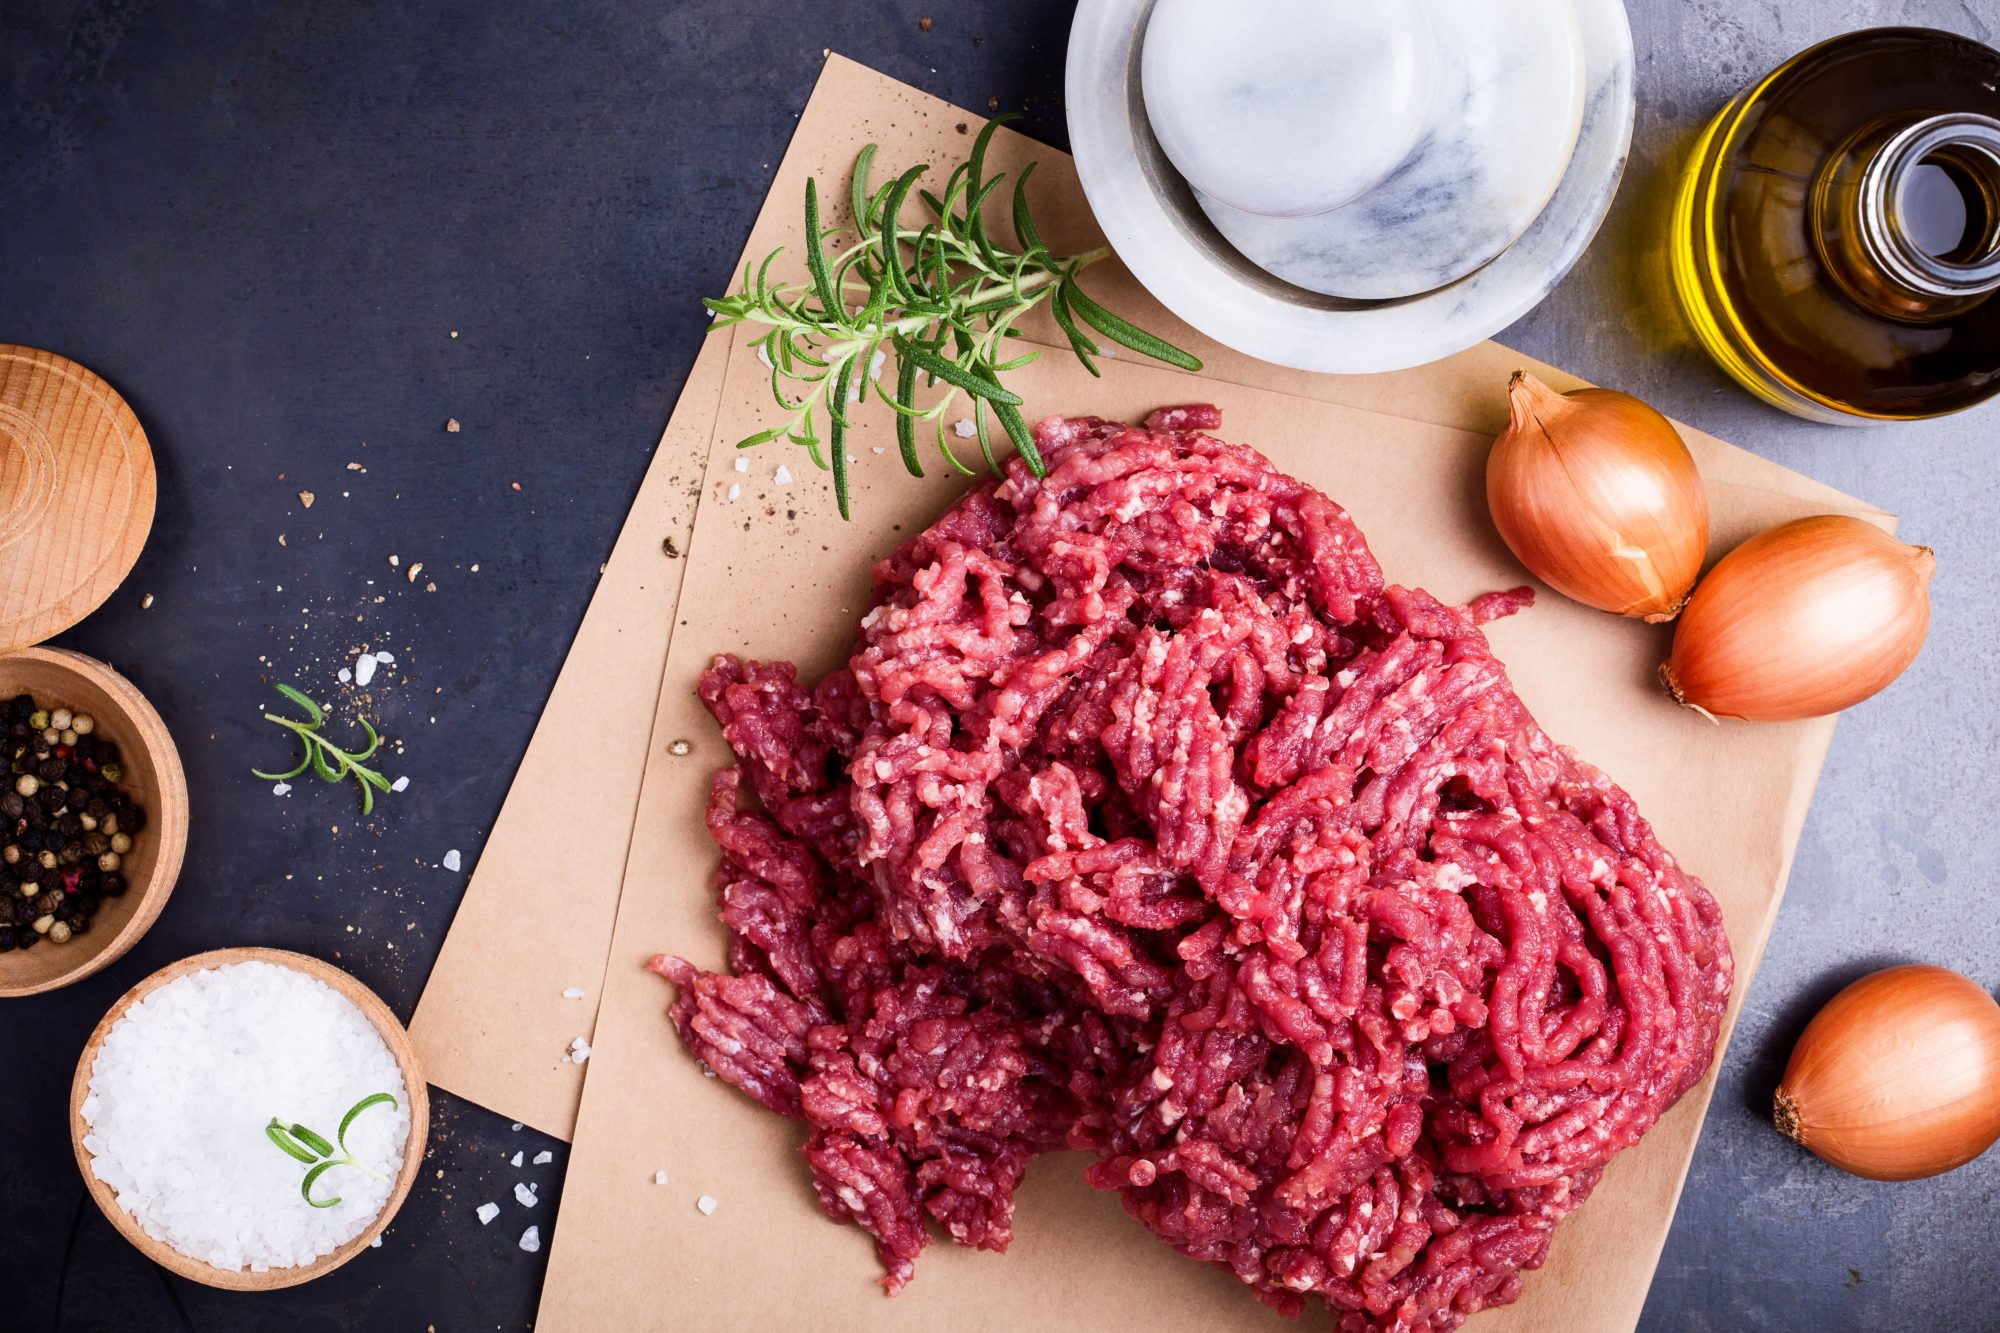 how long does ground beef last in the freezer